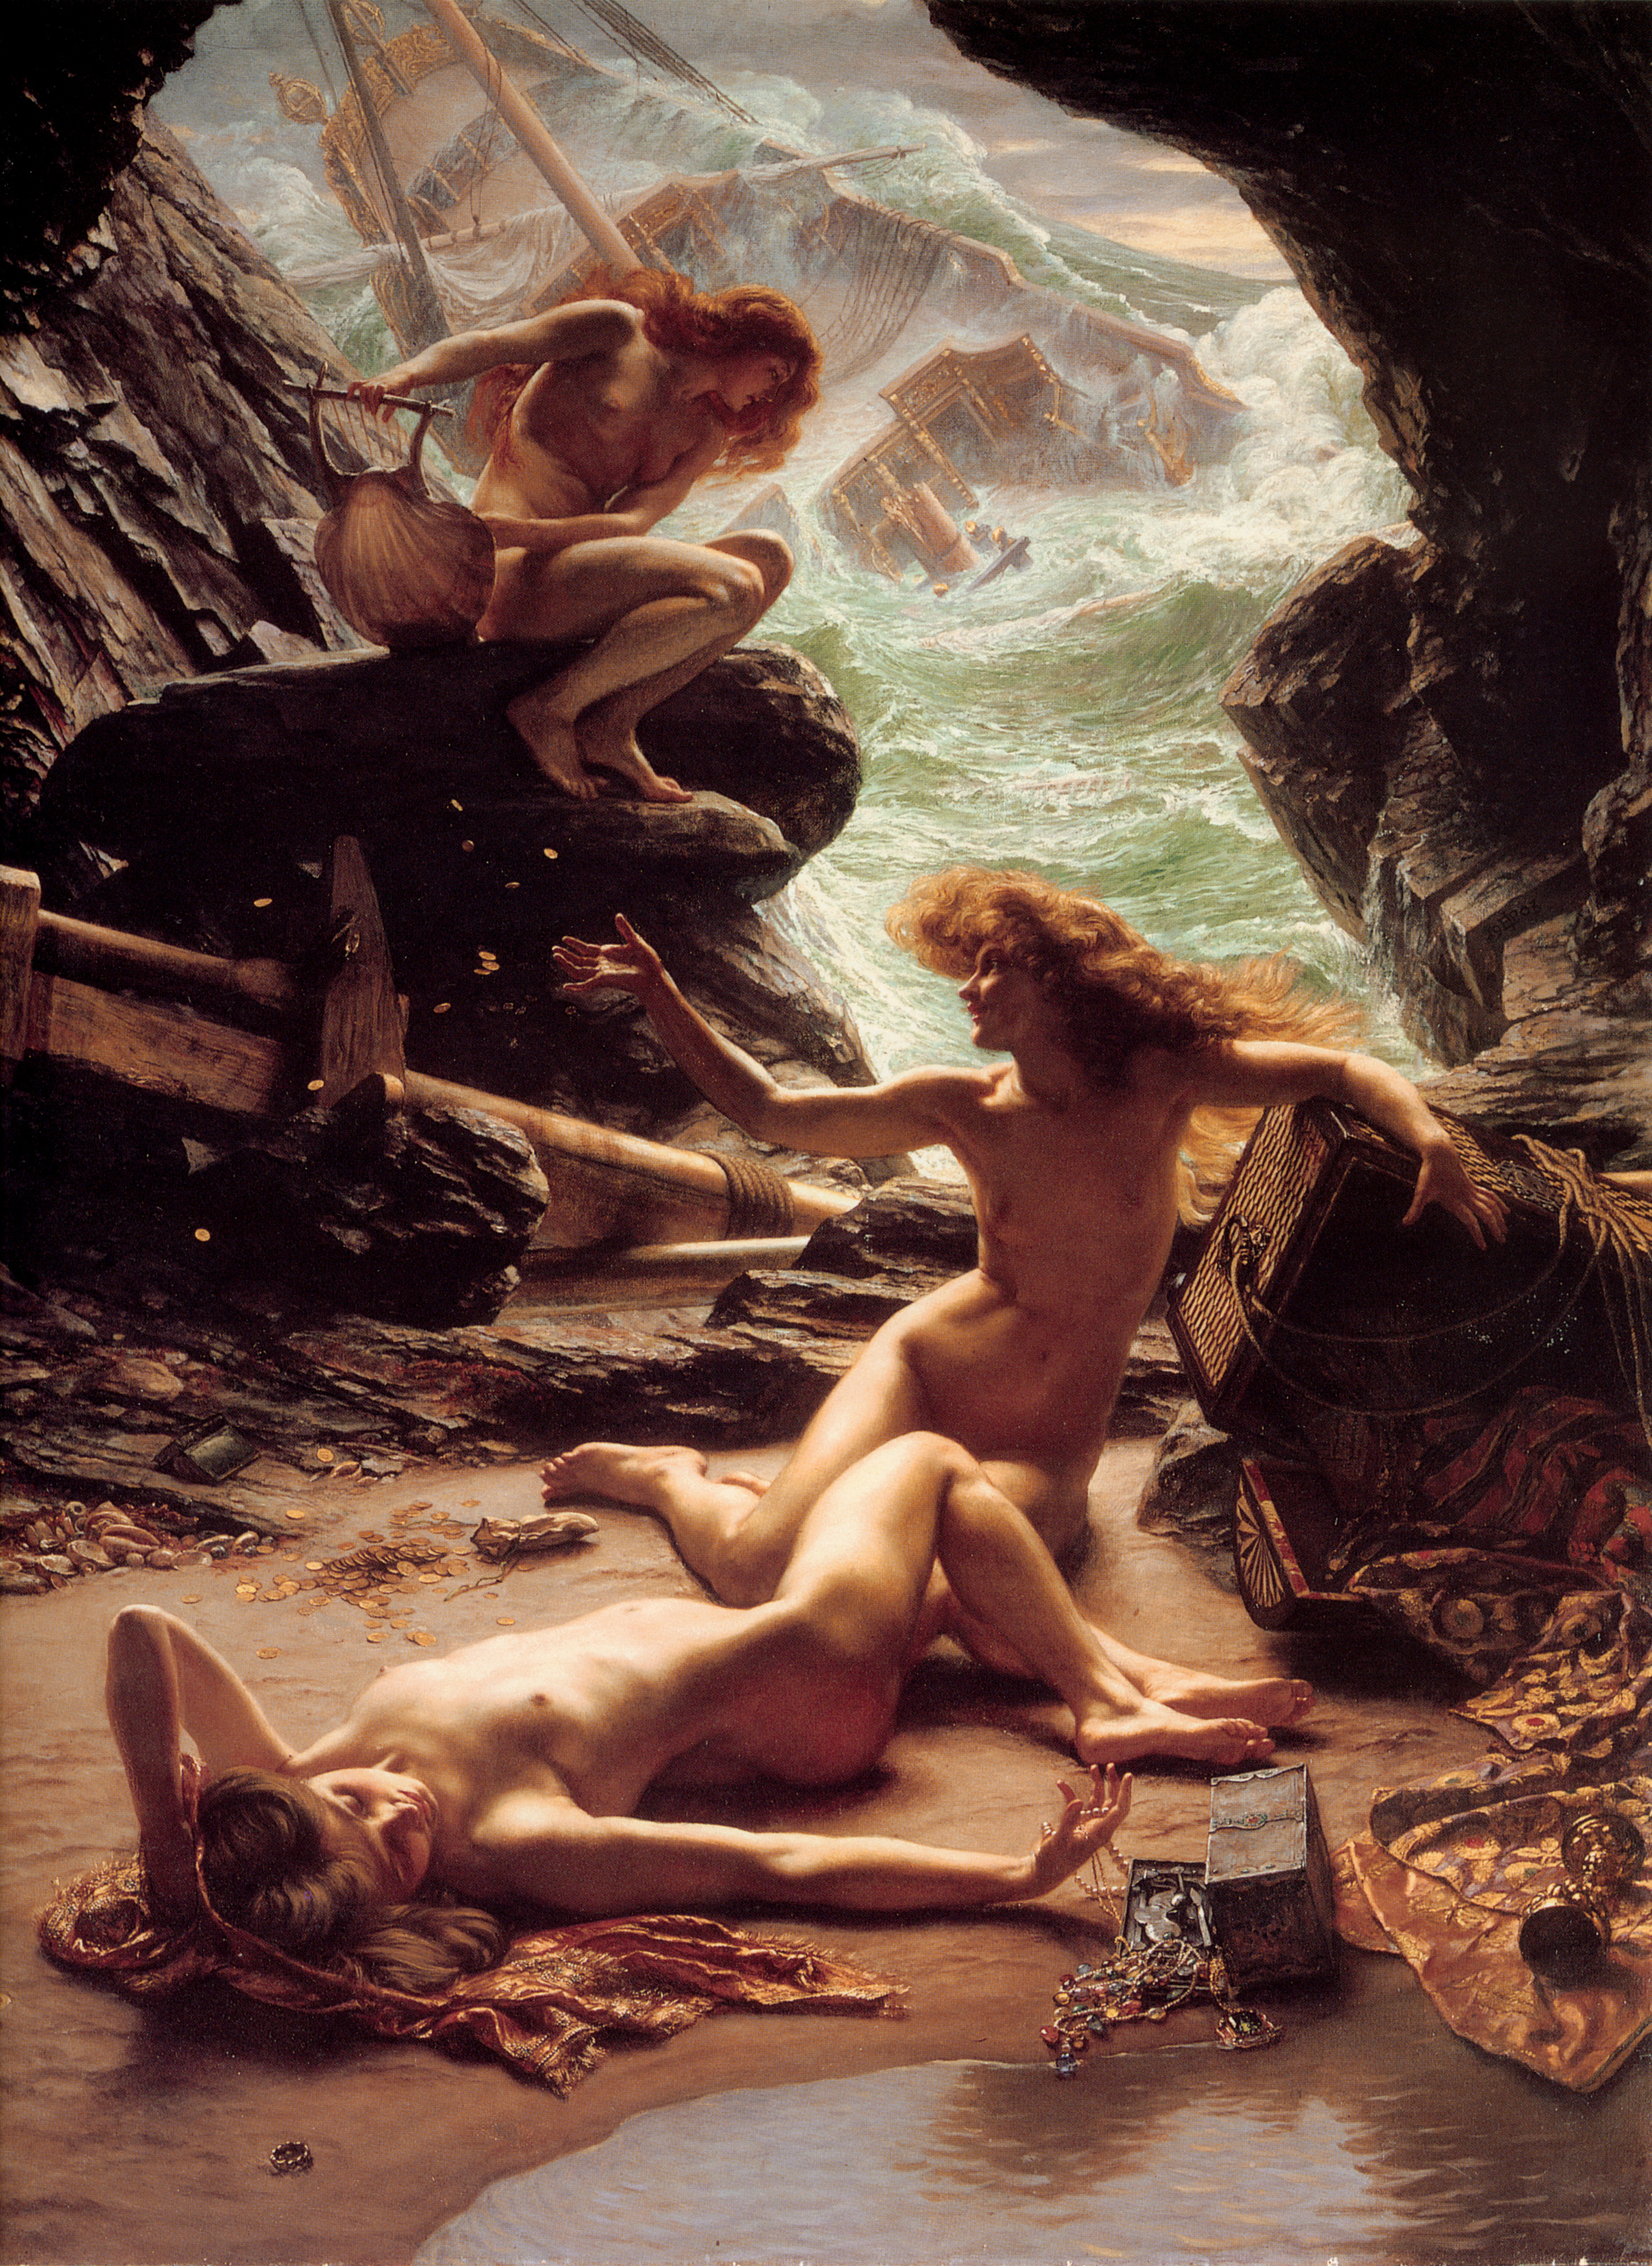 Sir_Edward_John_Poynter_—_Cave_of_the_Storm_Nymphs.jpg